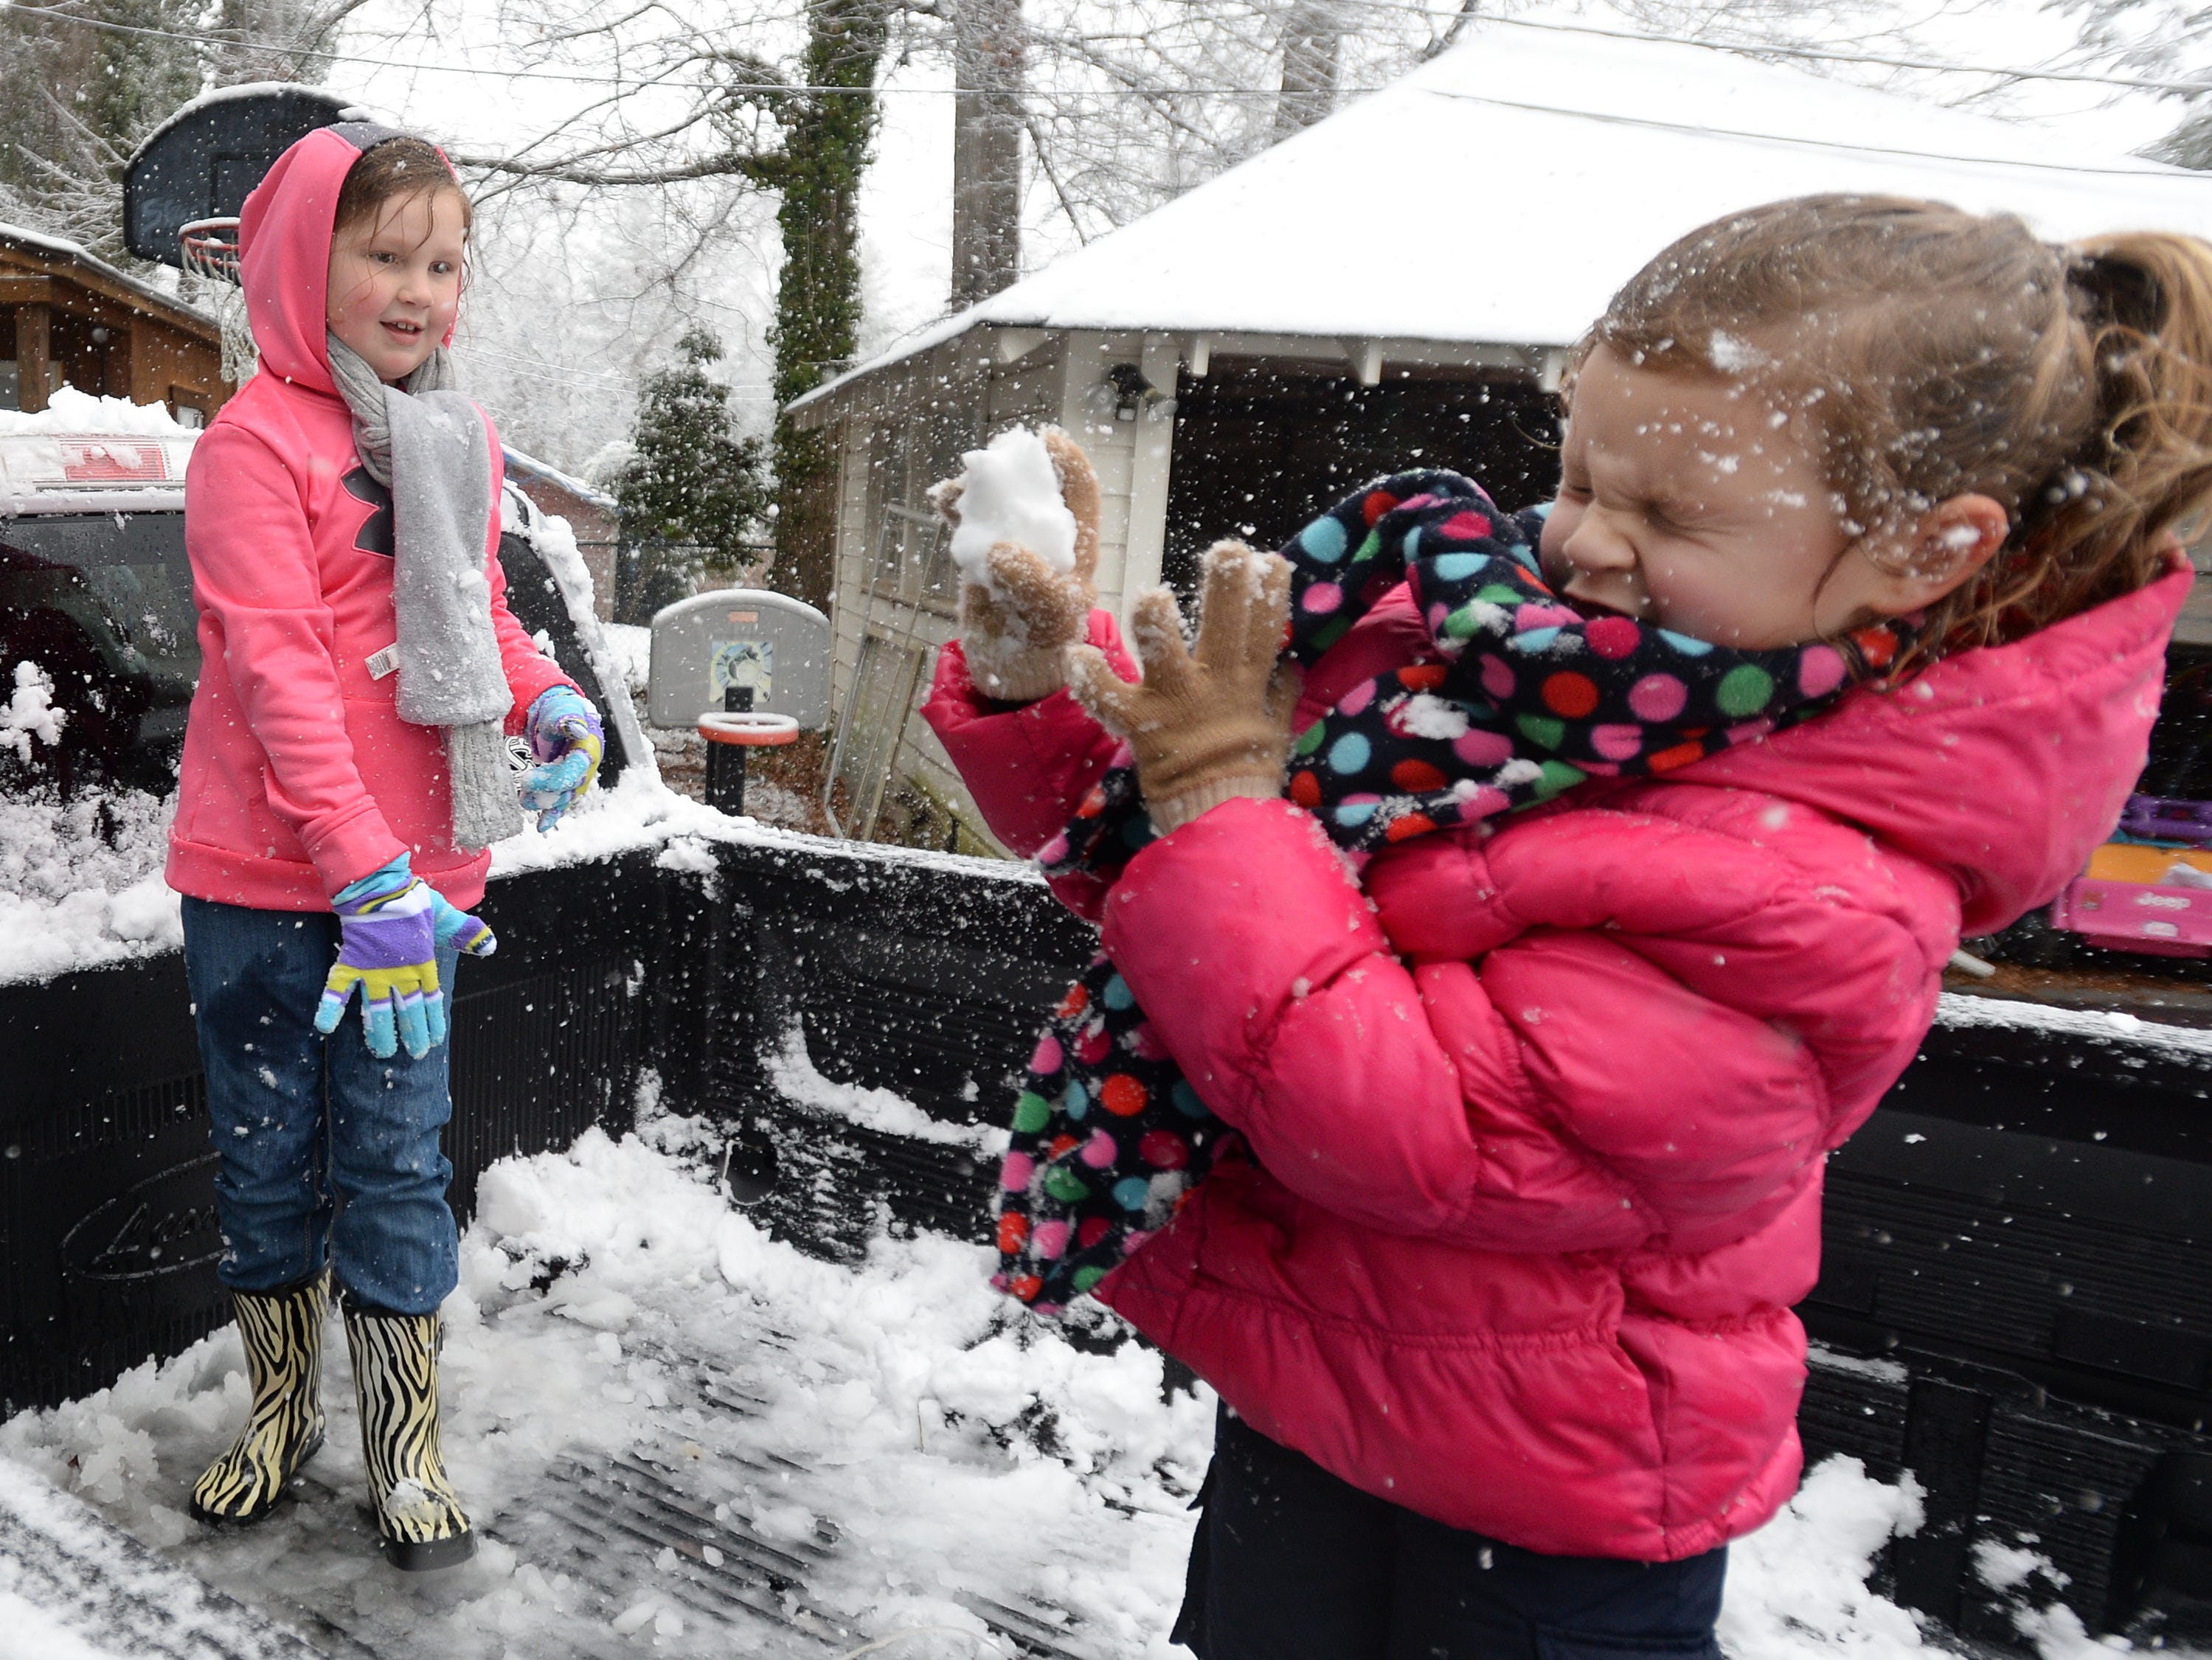 Eight-year-old Eva Kate Carwile throws a snow ball at her sister Addison, 4, in their yard in Belton Tuesday, February 11, 2014.